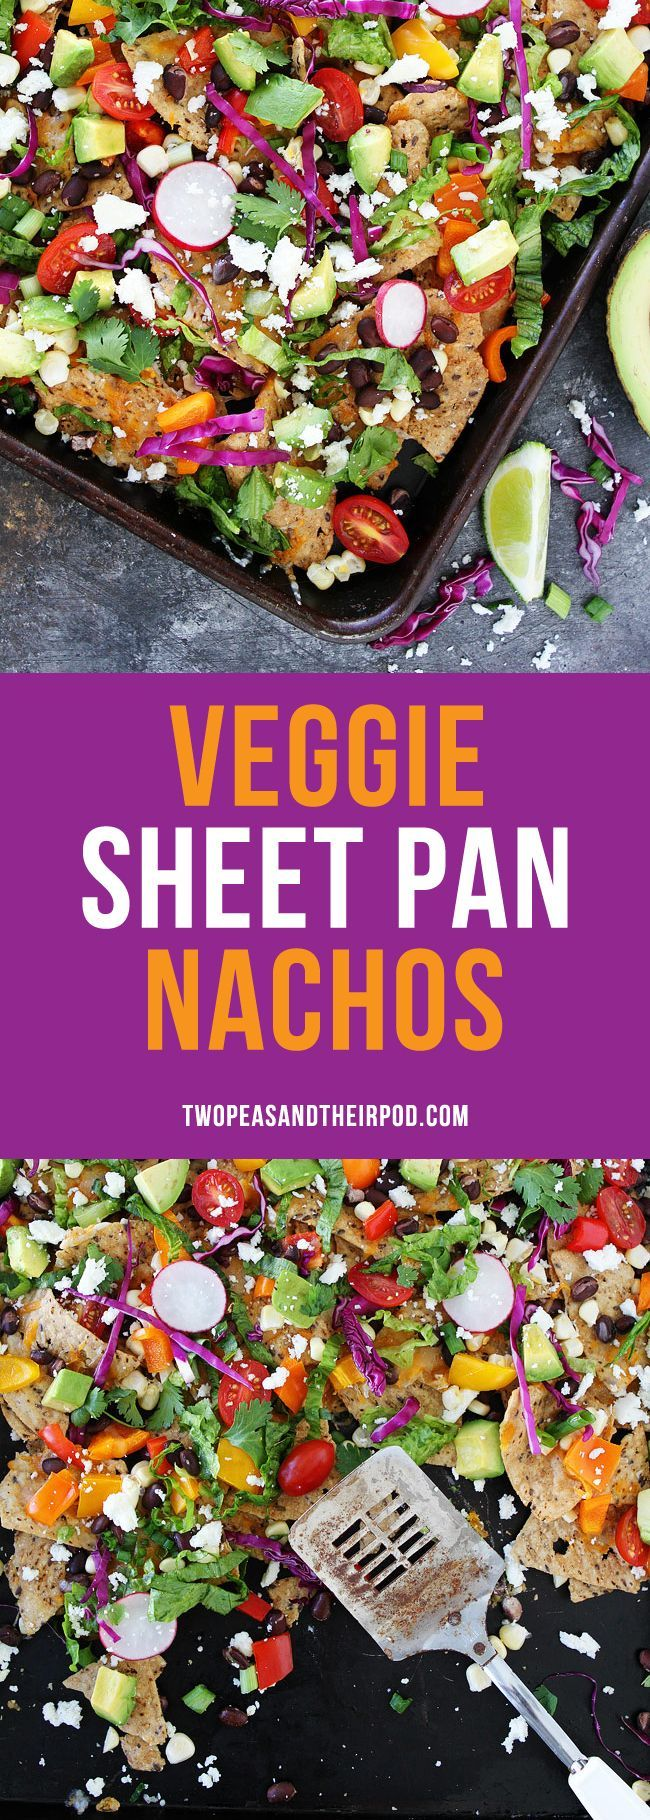 Veggie Sheet Pan Nachos These cheesy gluten free and vegetarian nachos are loaded with all of your favorite veggies! They are perfect for parties, game day, or any day!